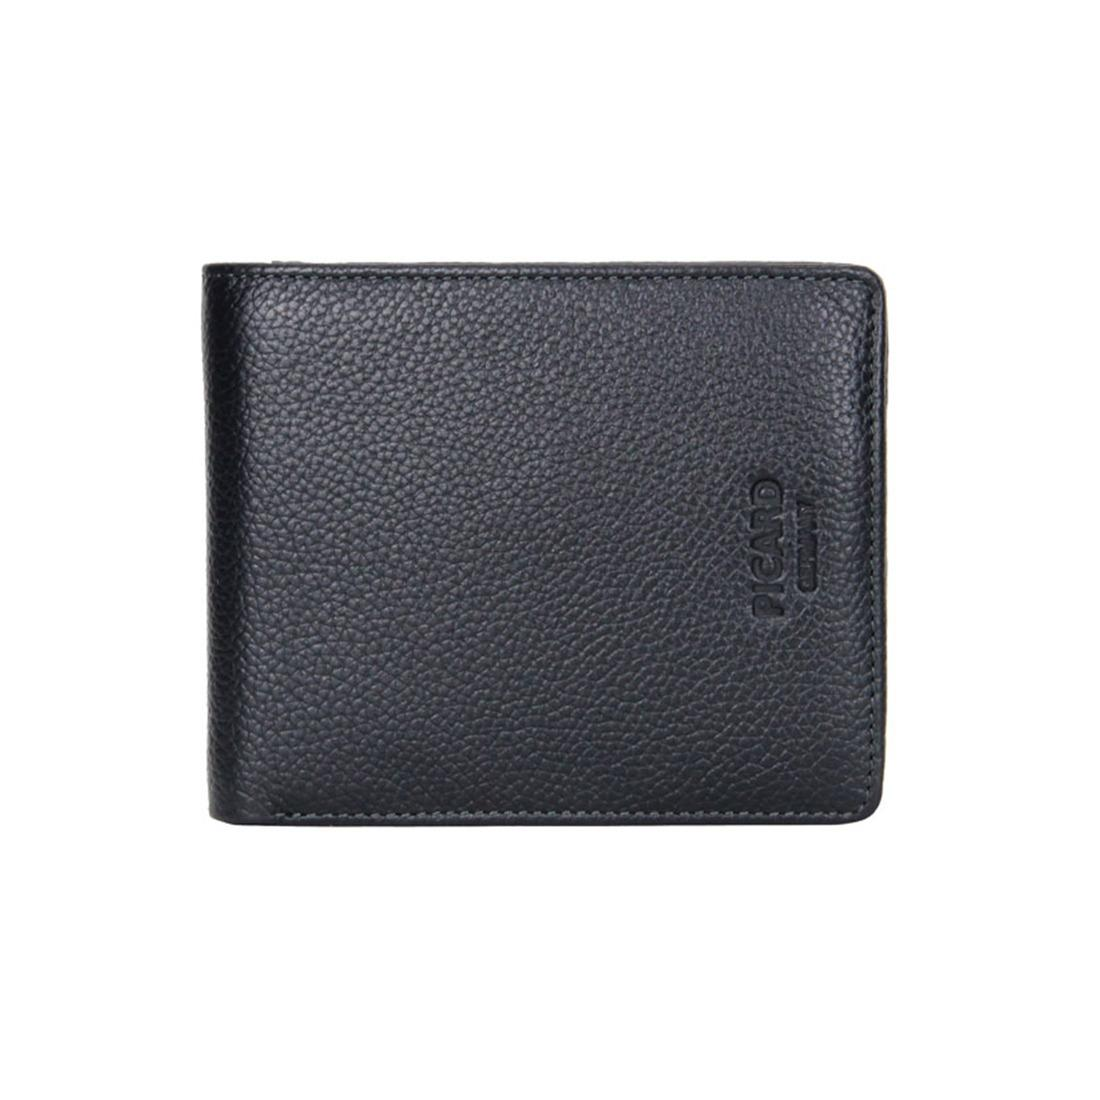 Deals For Picard Urban Flap Wallet